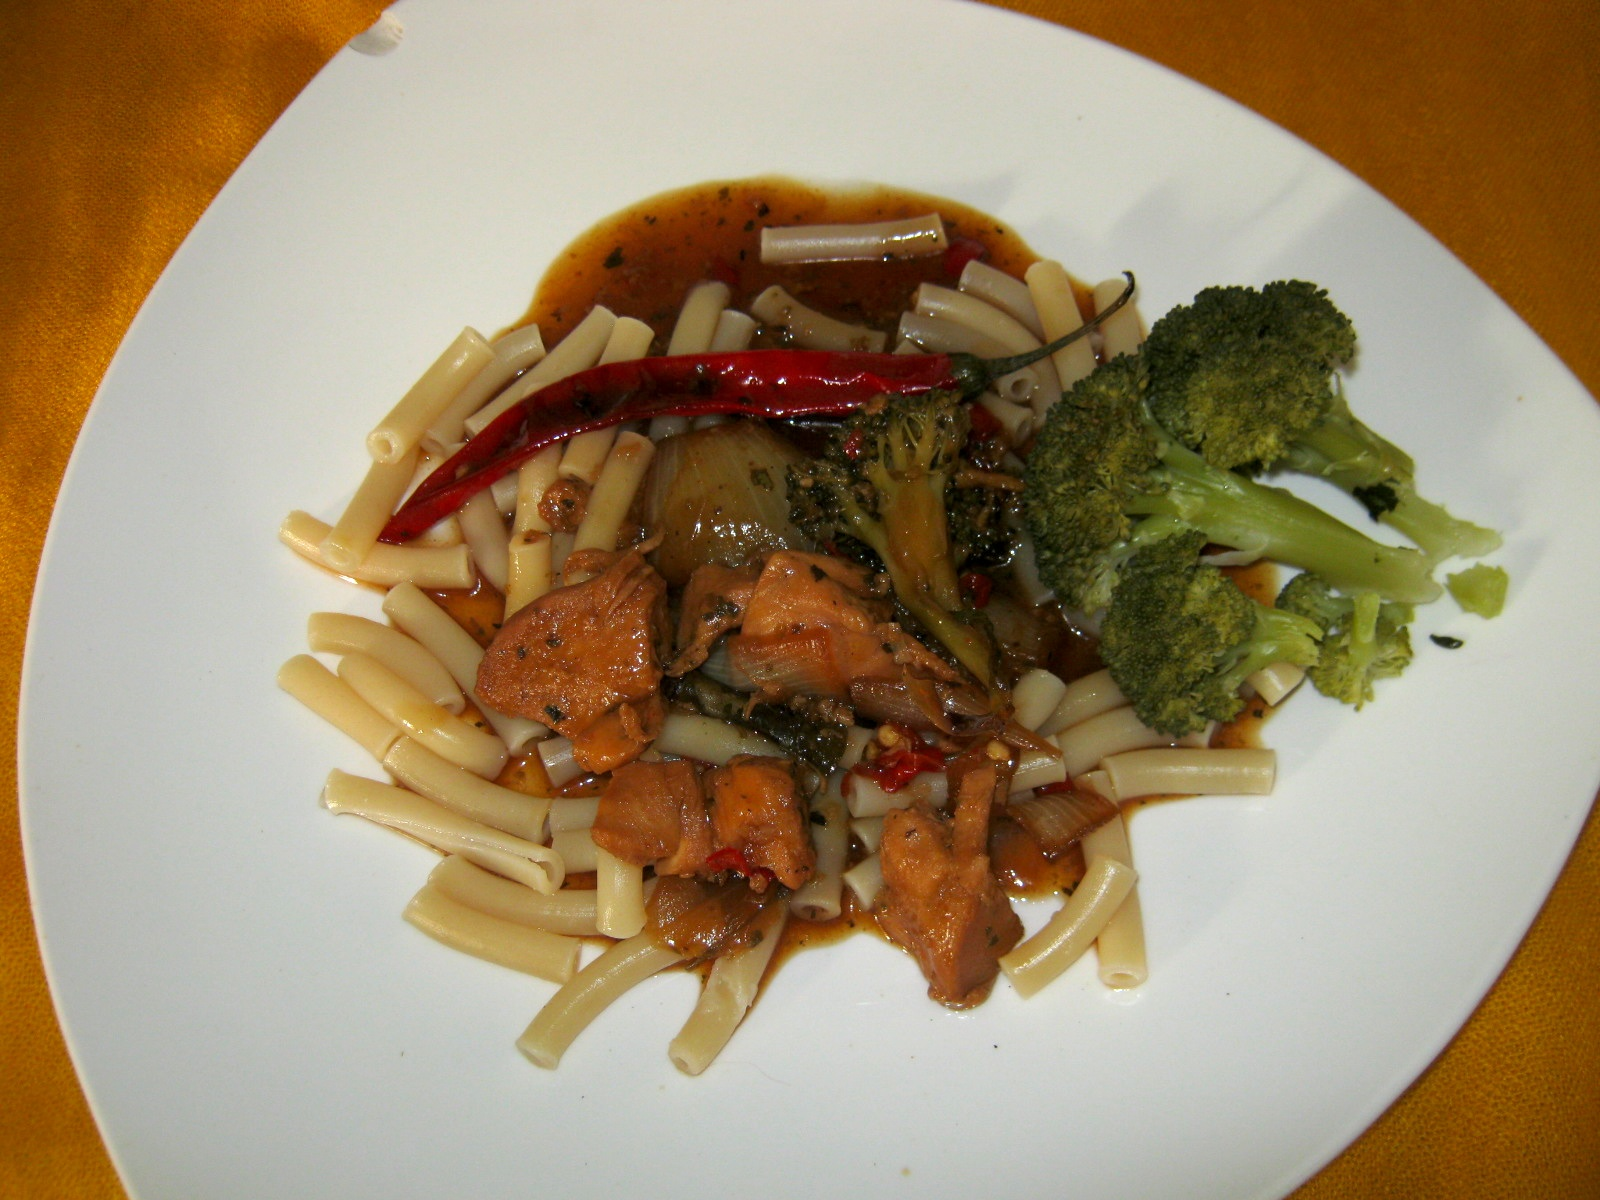 Chicken casserole with broccoli and pasta